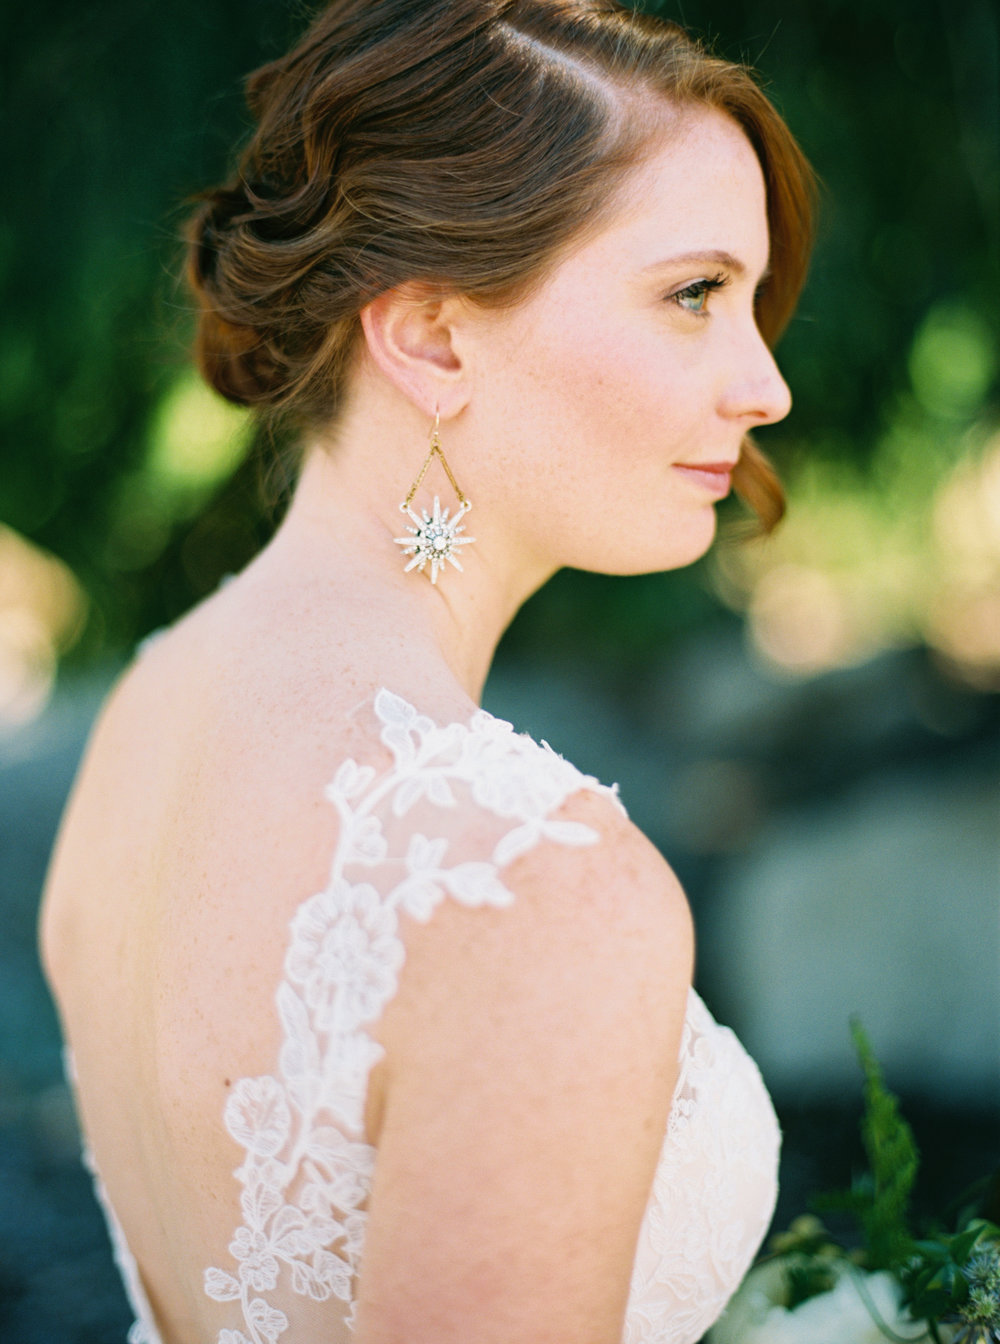 offwhitebeauty.com | OffWhite Makeup & Beauty | Anna Peters Photography | Trinity Tree Farm | Makeup Artist | Bridal Hair | Airbrush Tanning | On Location | Pacific Northwest Bride